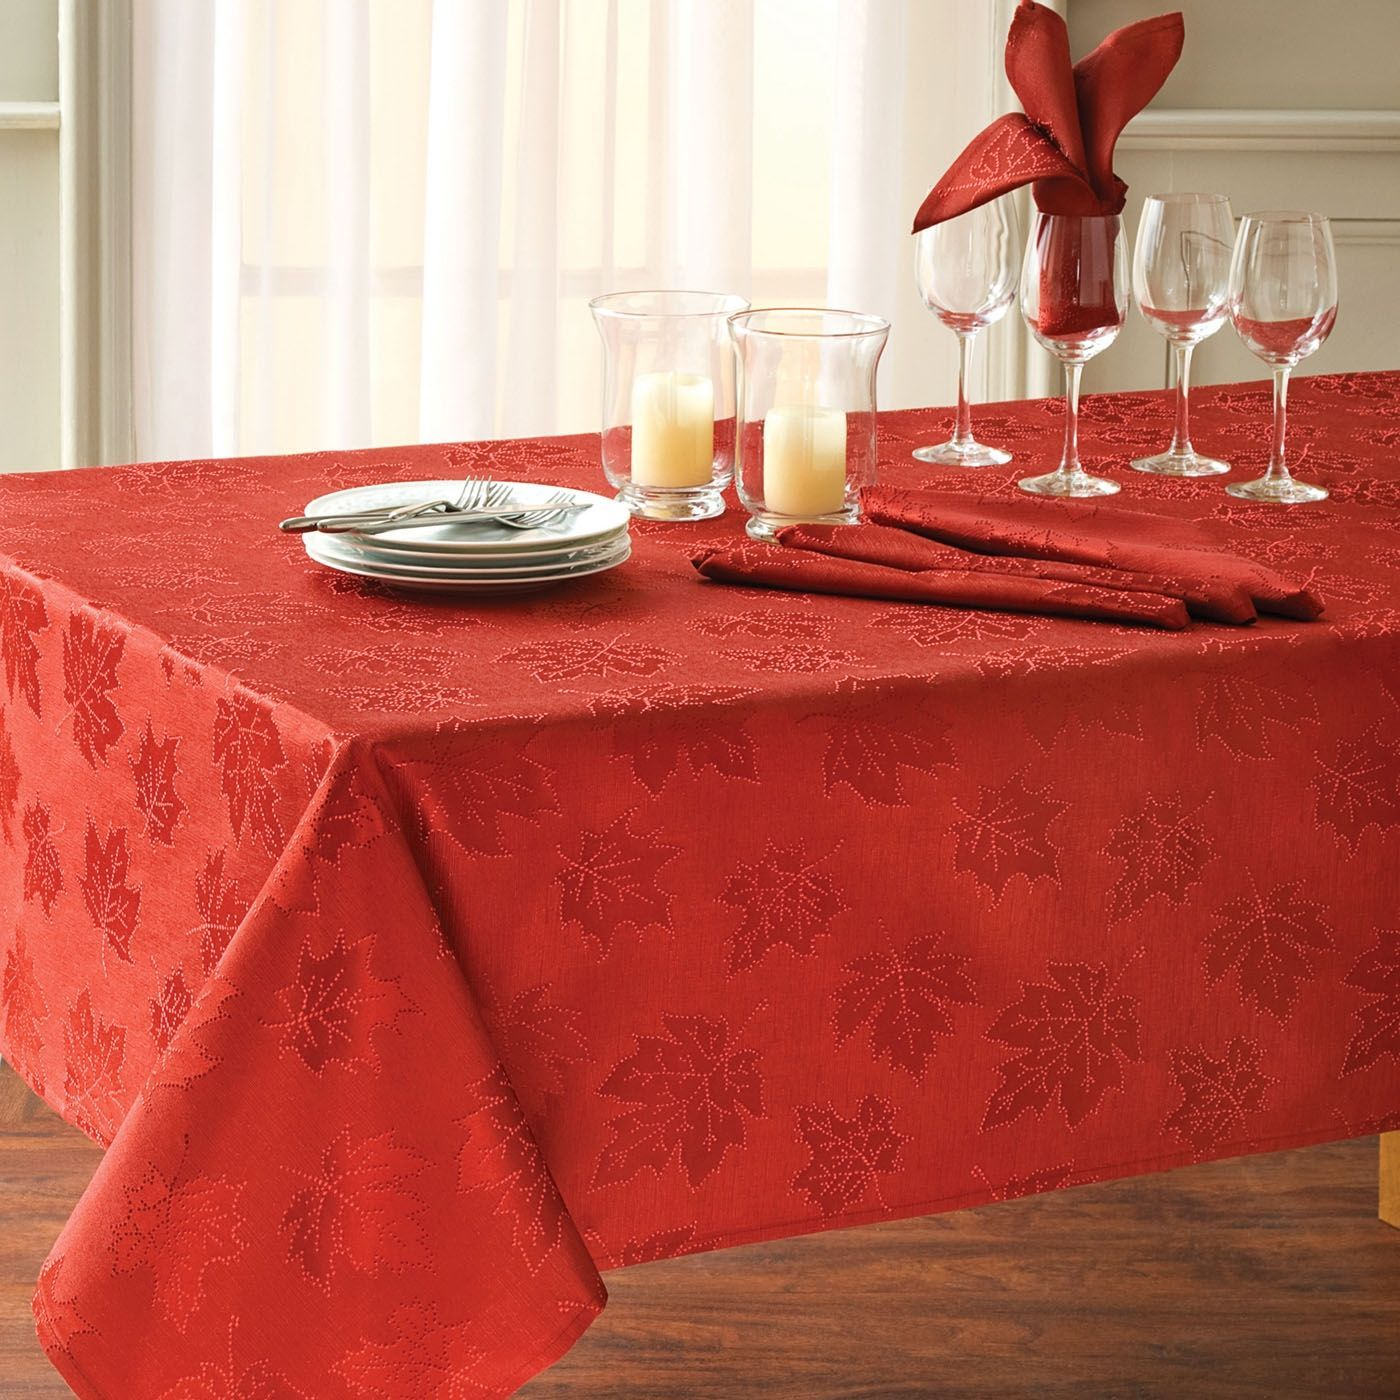 Harvest Table Linens Hampshire Fall Leaf Tablecloth Shopko Com